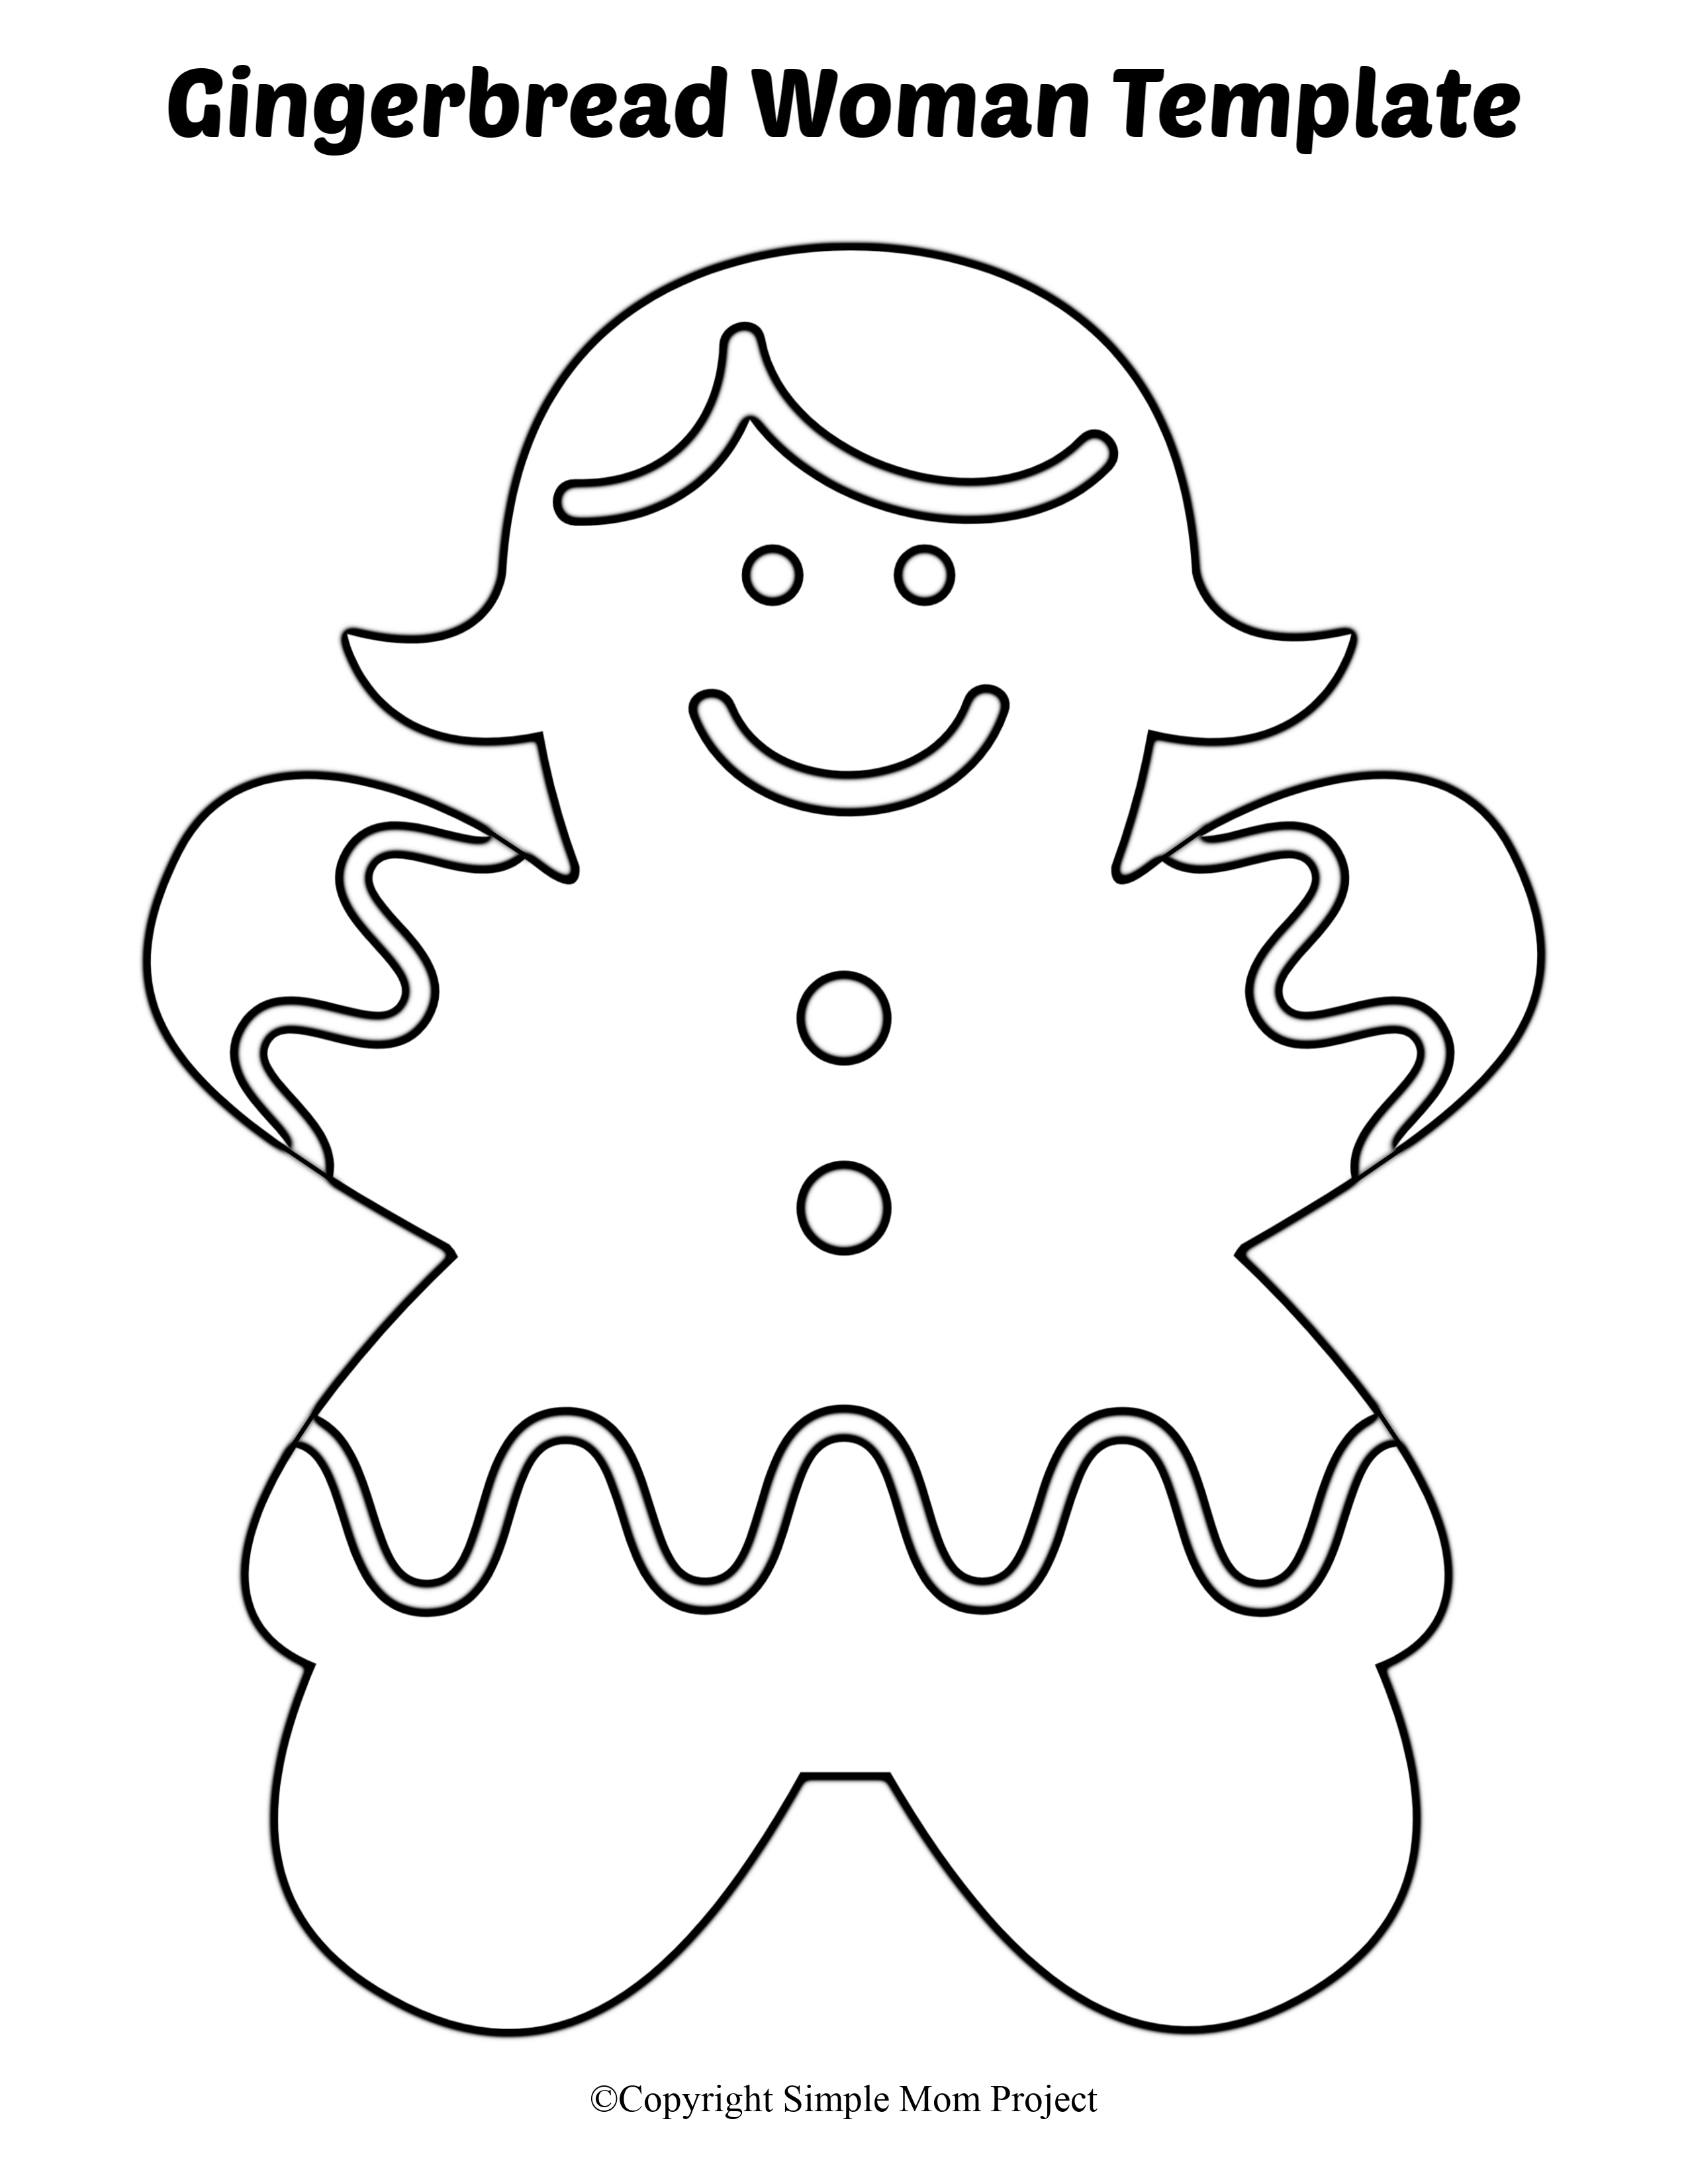 Free Printable Large Gingerbread Woman Cutout Template